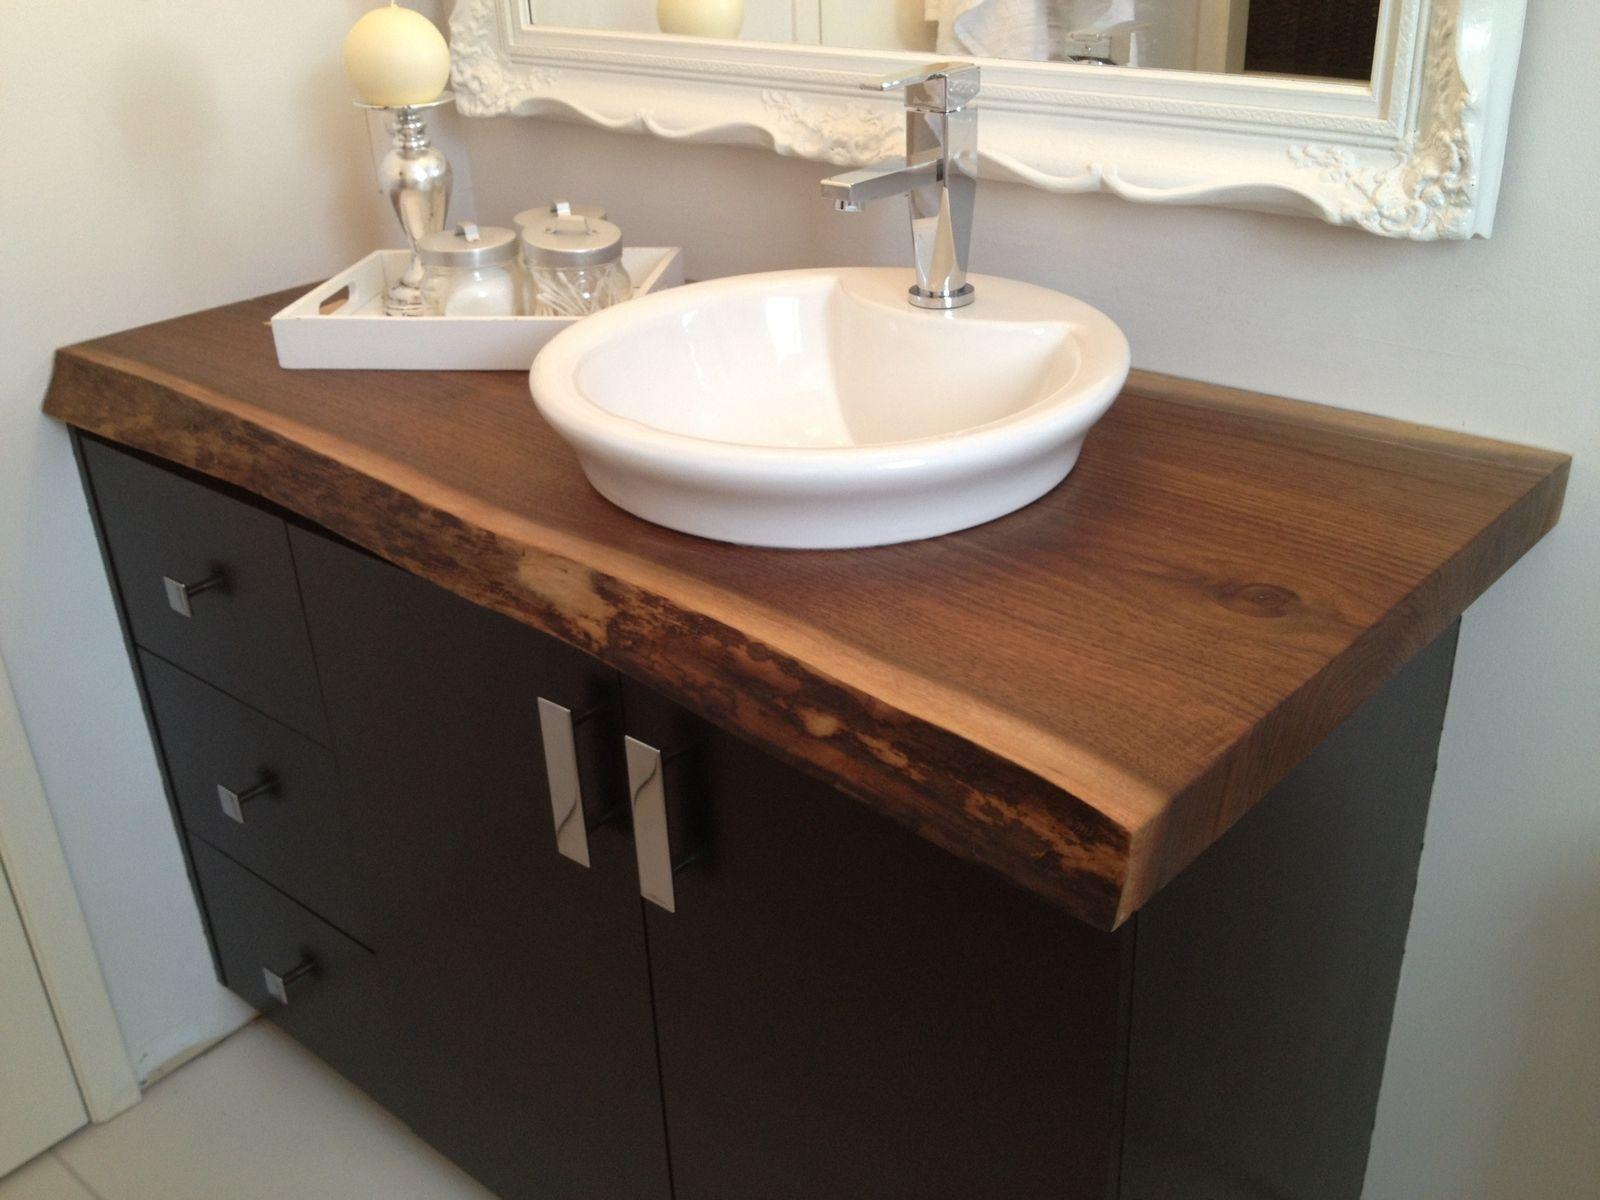 Custom Bathroom Vanity Tops Canada bathroom amazing round white vessel sink with wood rustic modern